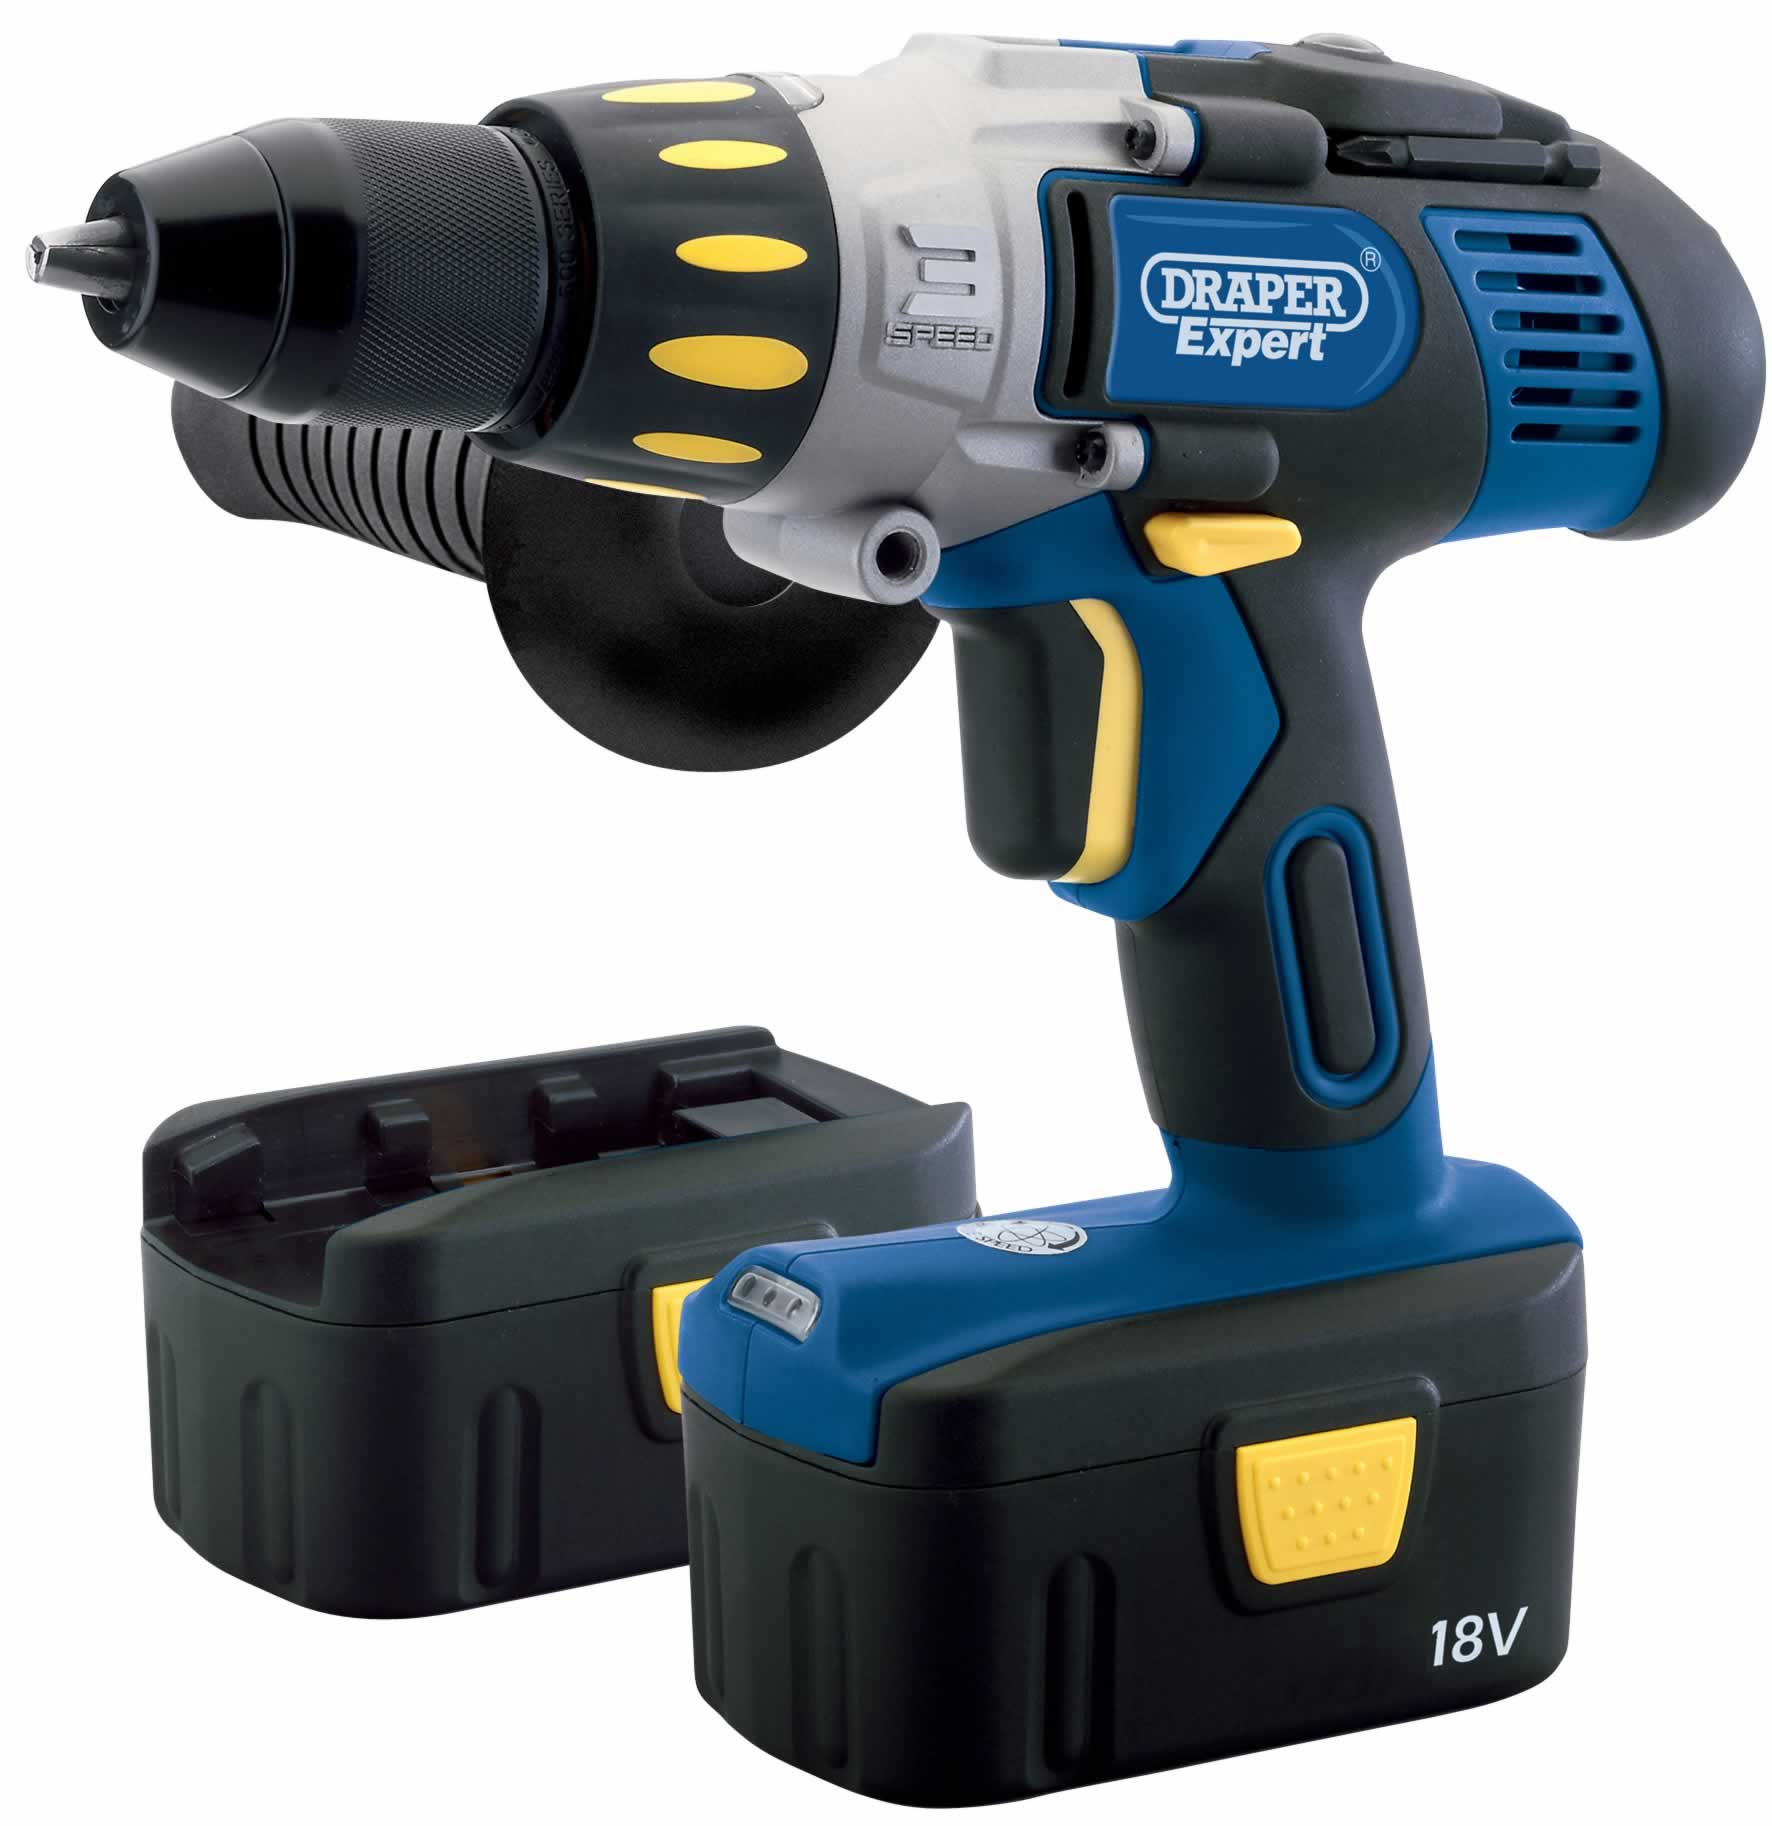 EXPERT 18V ELECTRONIC CORDLESS COMBINATION HAMMER DRILL WITH TWO Ni-CD BATTERIES  (AHA)